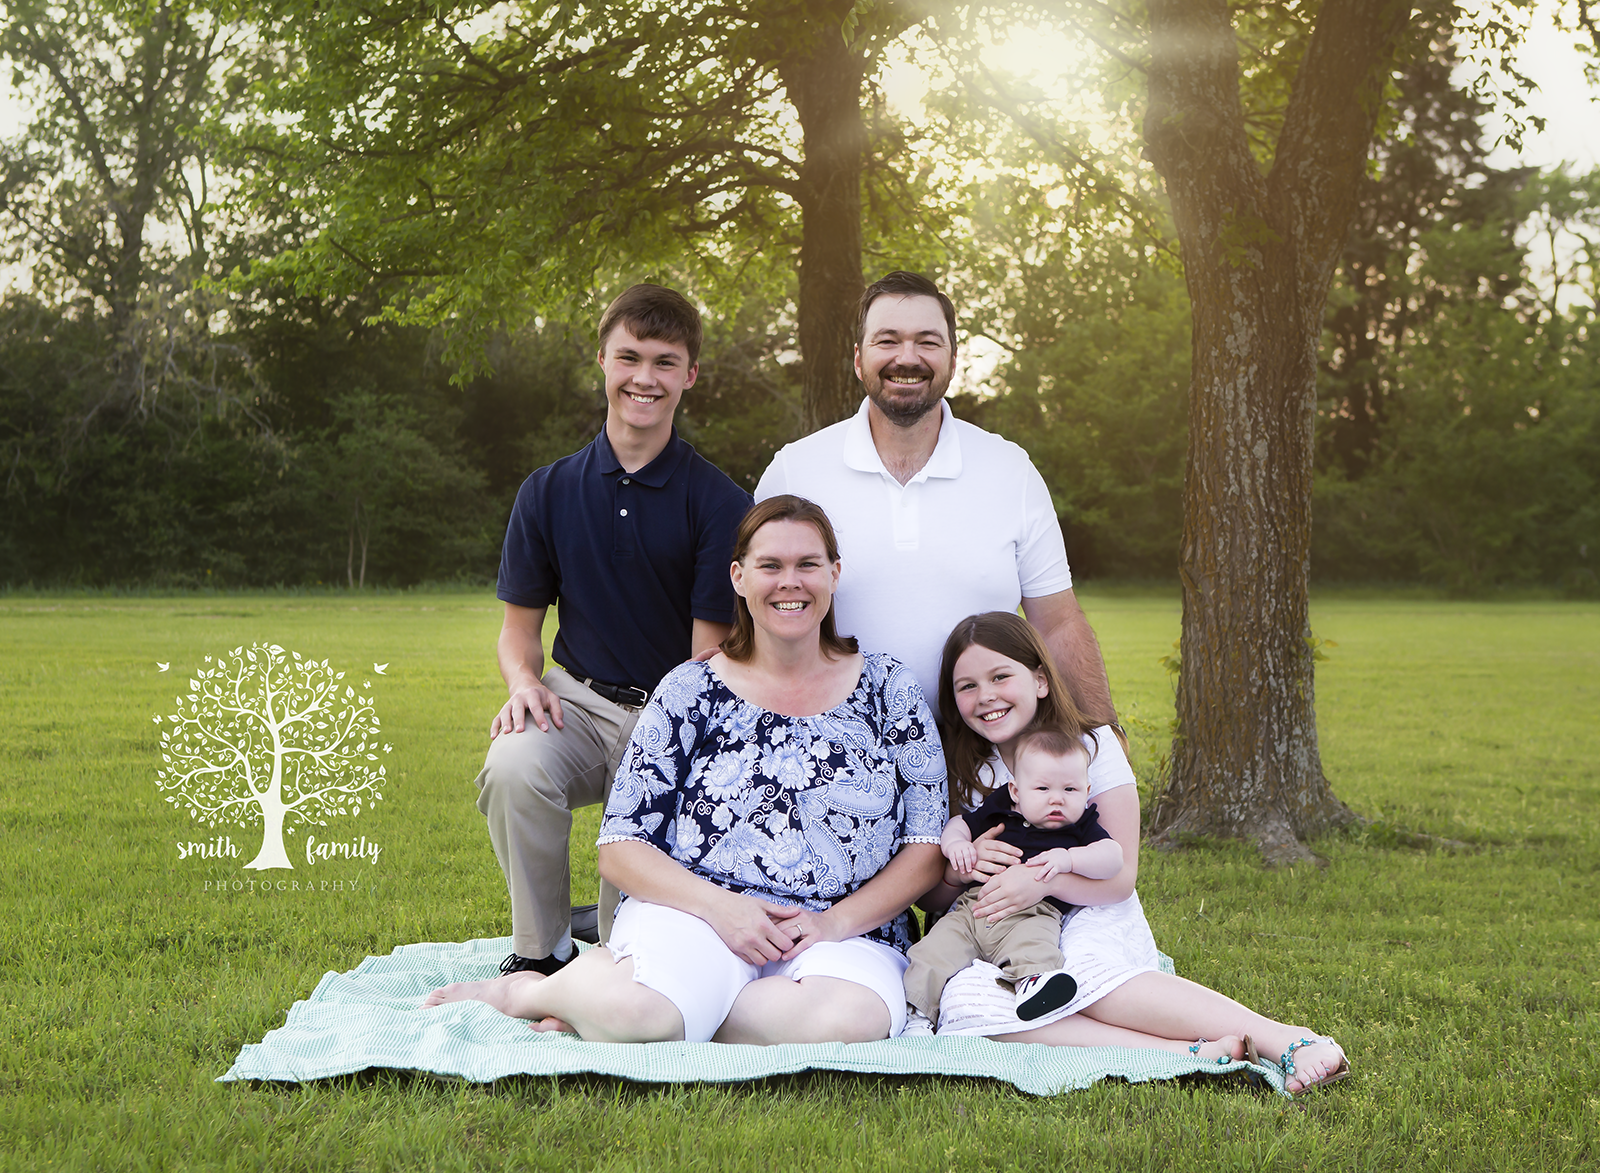 2017 - Family Session. And just like that the Dale Family grew by one!